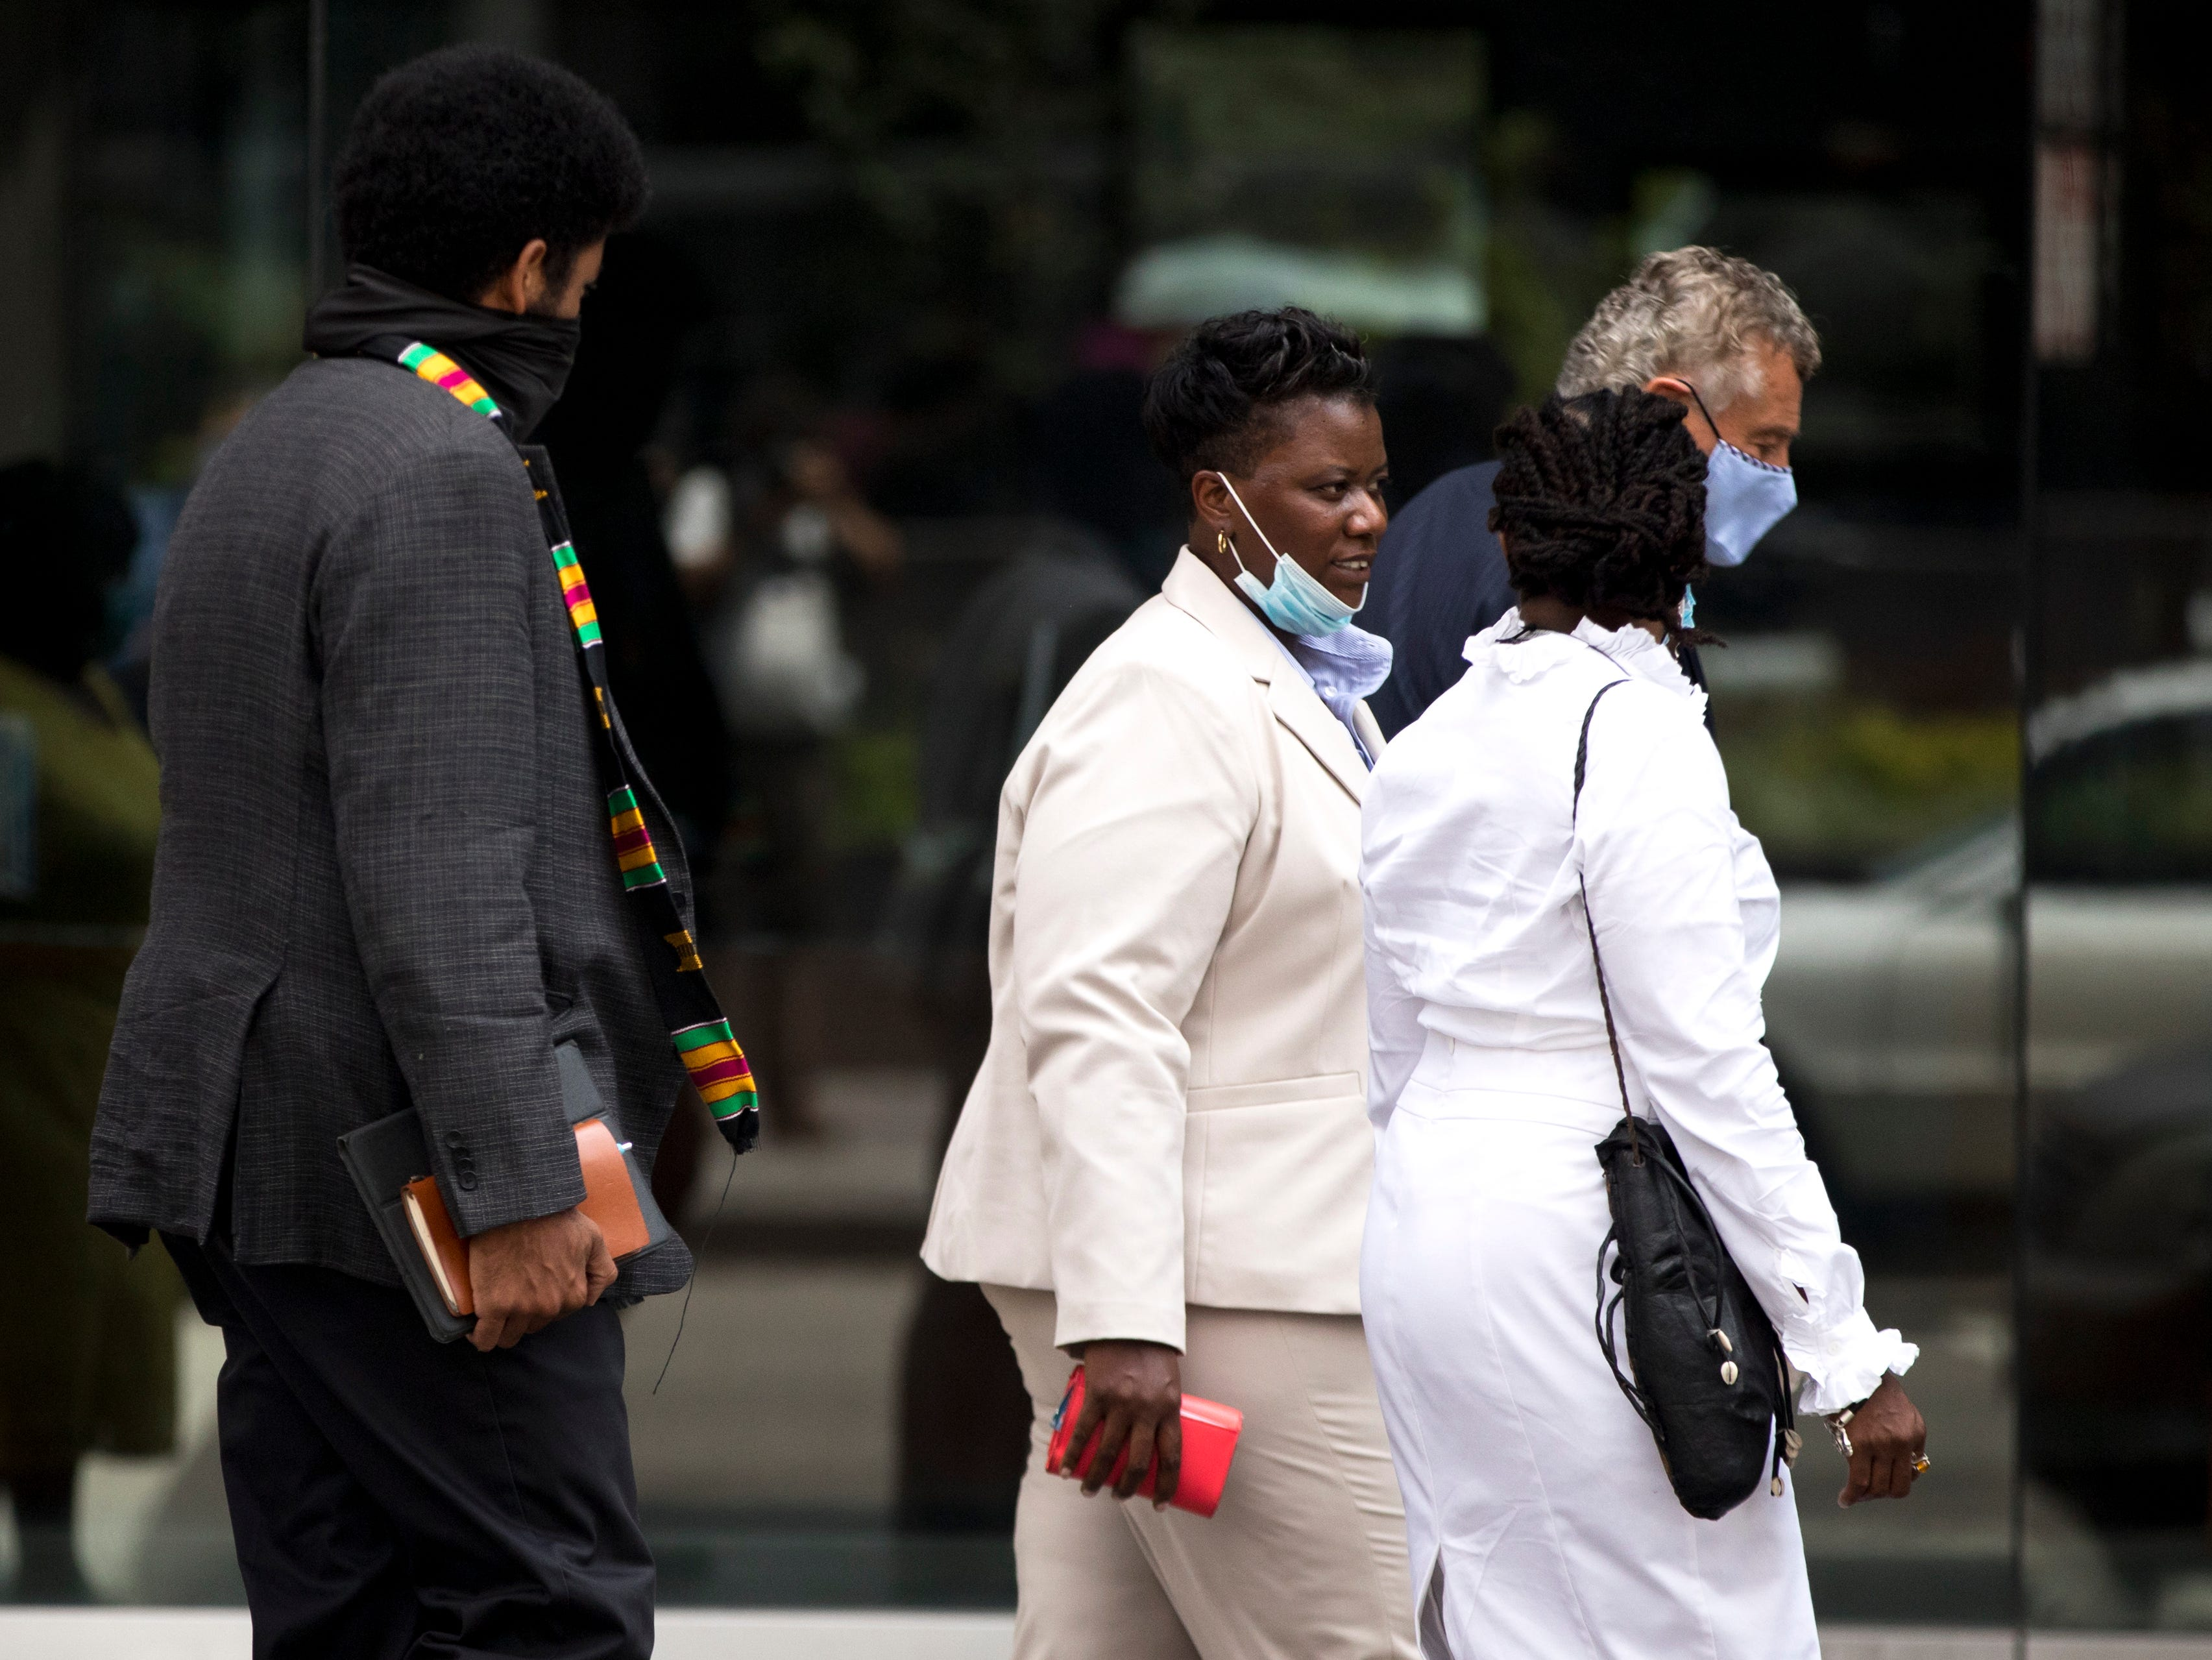 Tamaya Dennard, center, former Cincinnati City Council member, speaks to Iris Roley, Cincinnati activist, as she leaves the federal courthouse in Cincinnati on Monday, June 29, 2020. Tamaya Dennard pleaded guilt to a federal fraud charge.